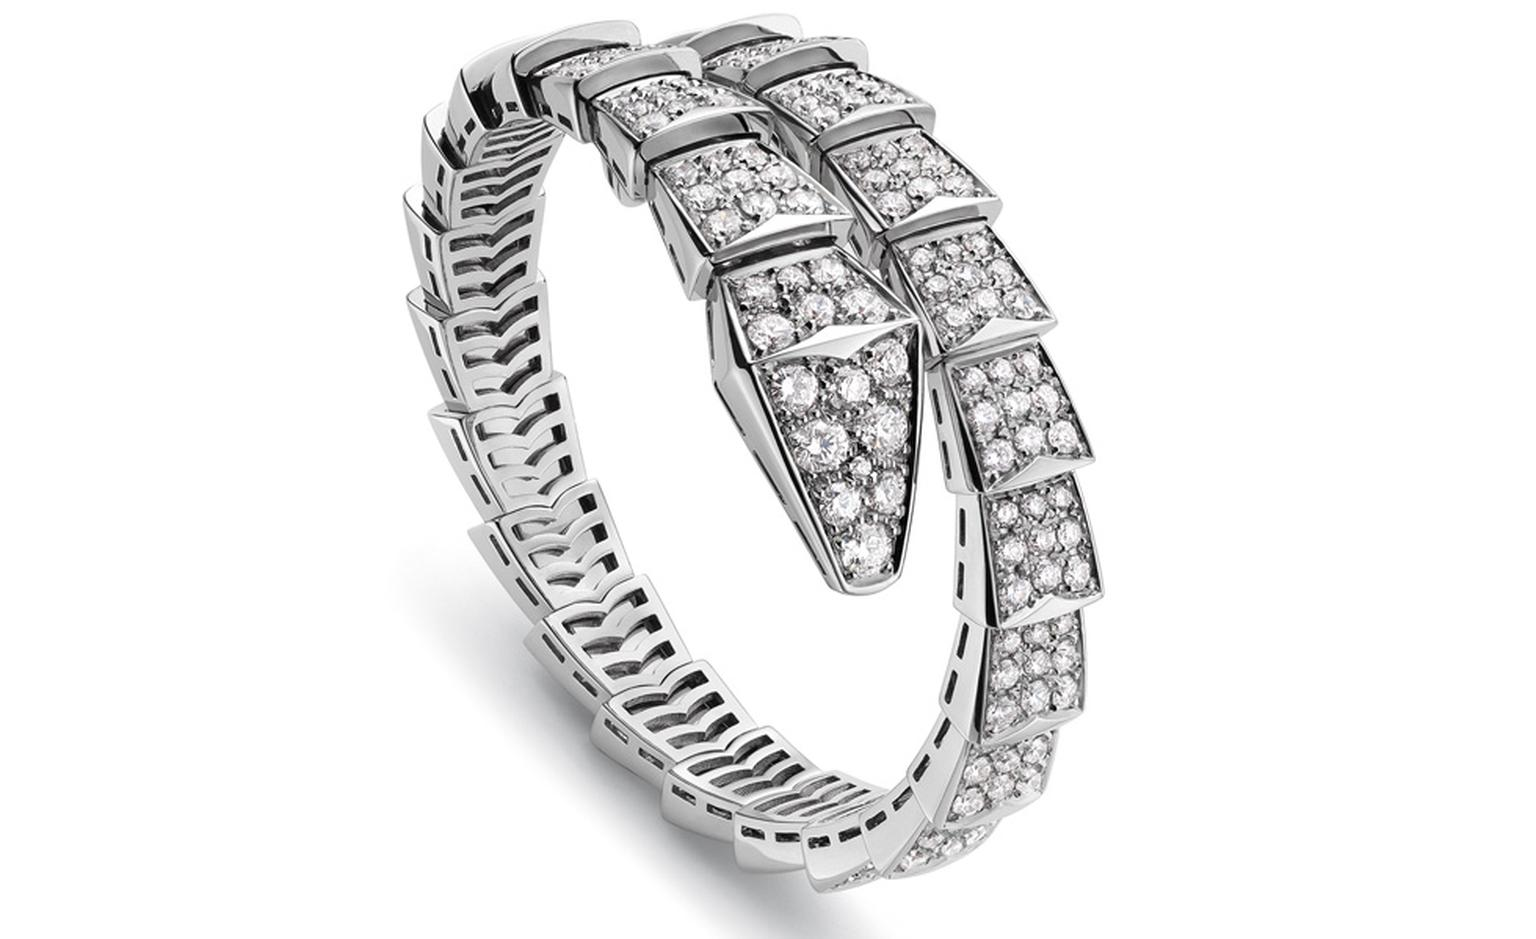 Bulgari Serpenti Bracelet with diamonds and white gold worn by Julianne Moore at BAFTAs 2011